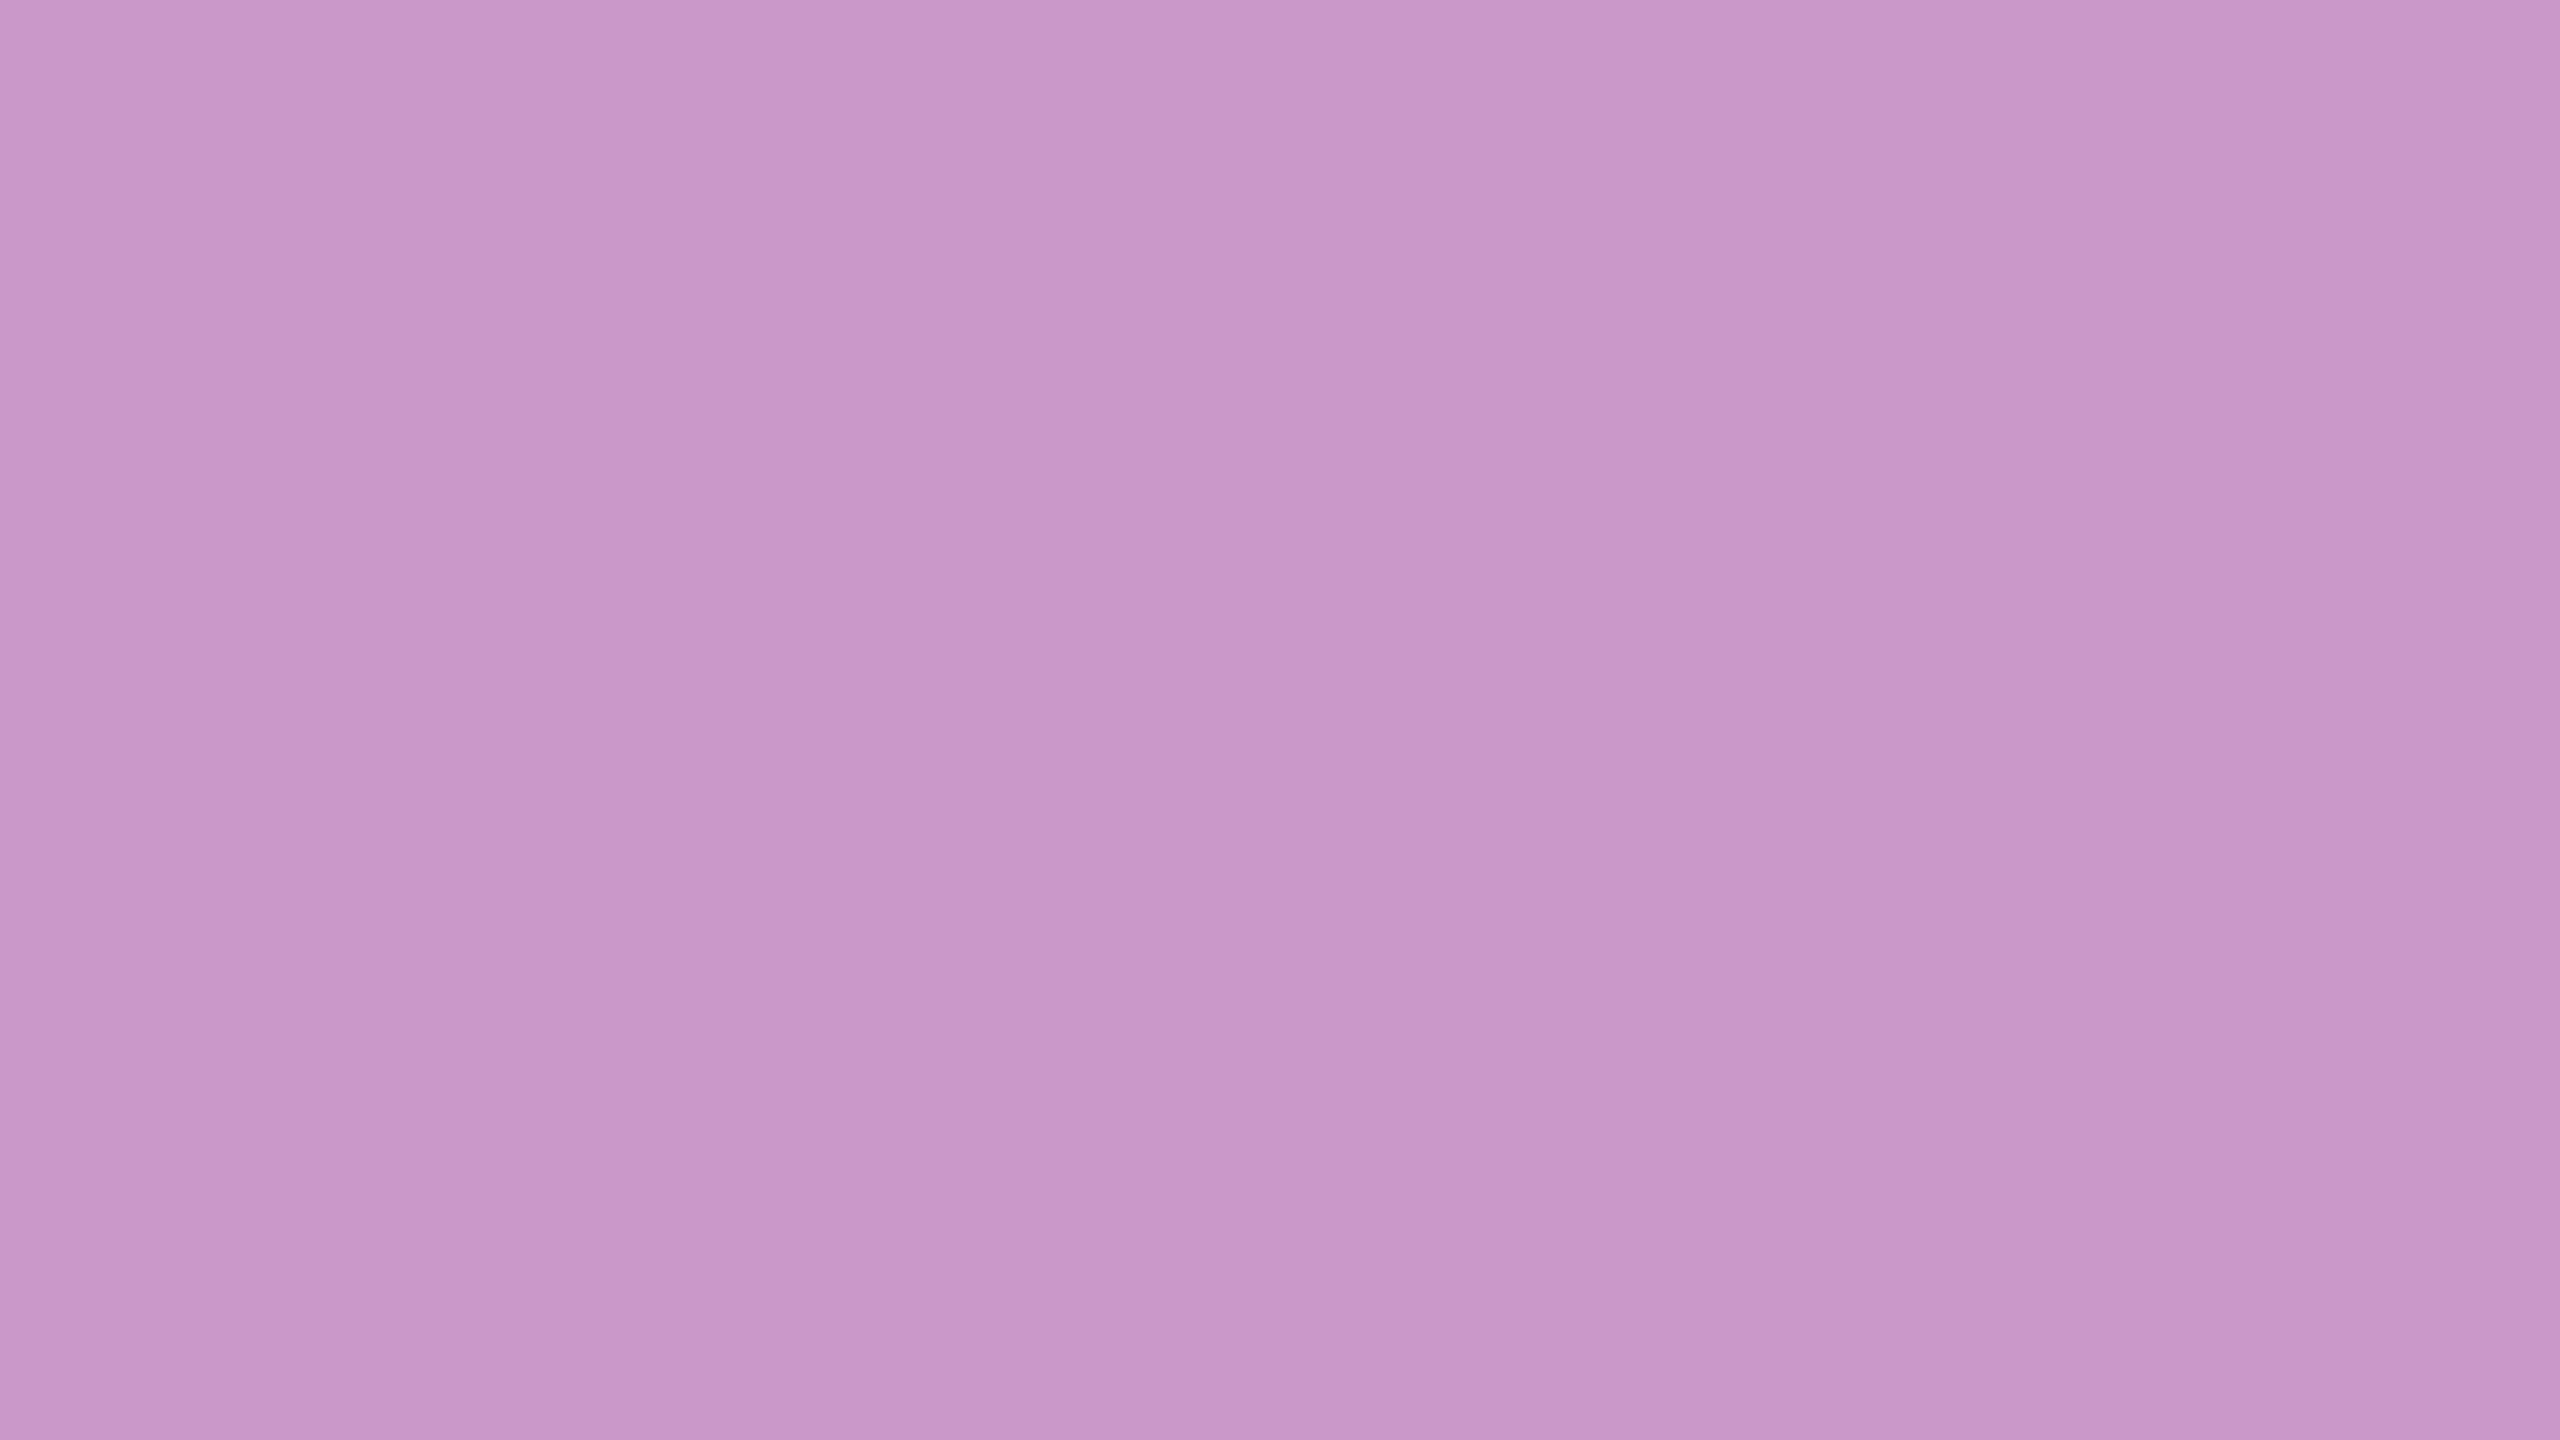 Violet solid color background view and download the below background 2560x1440